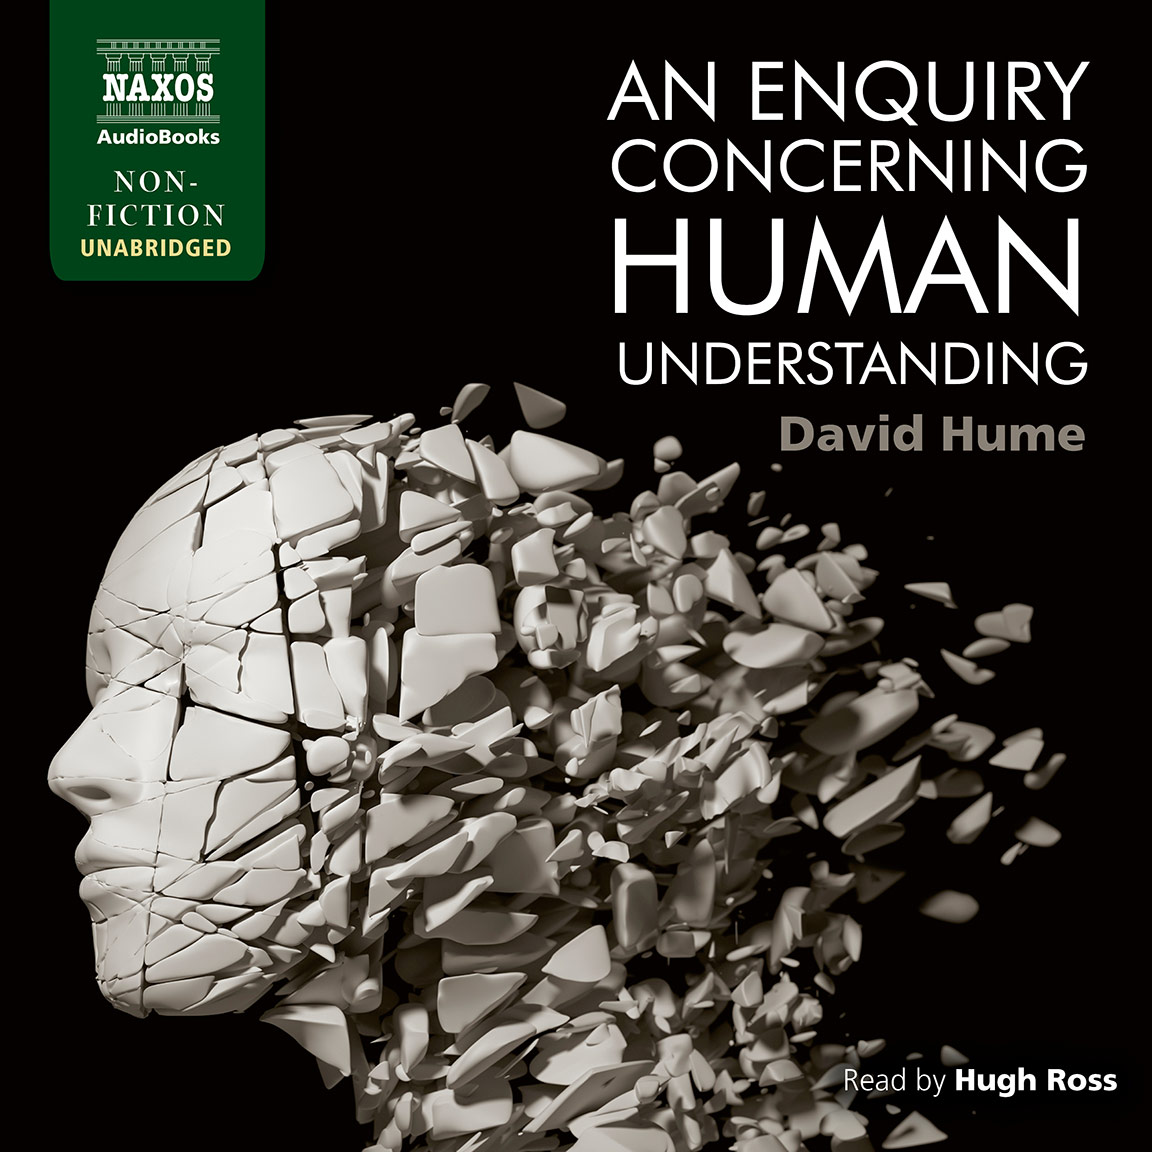 An Enquiry Concerning Human Understanding (unabridged)